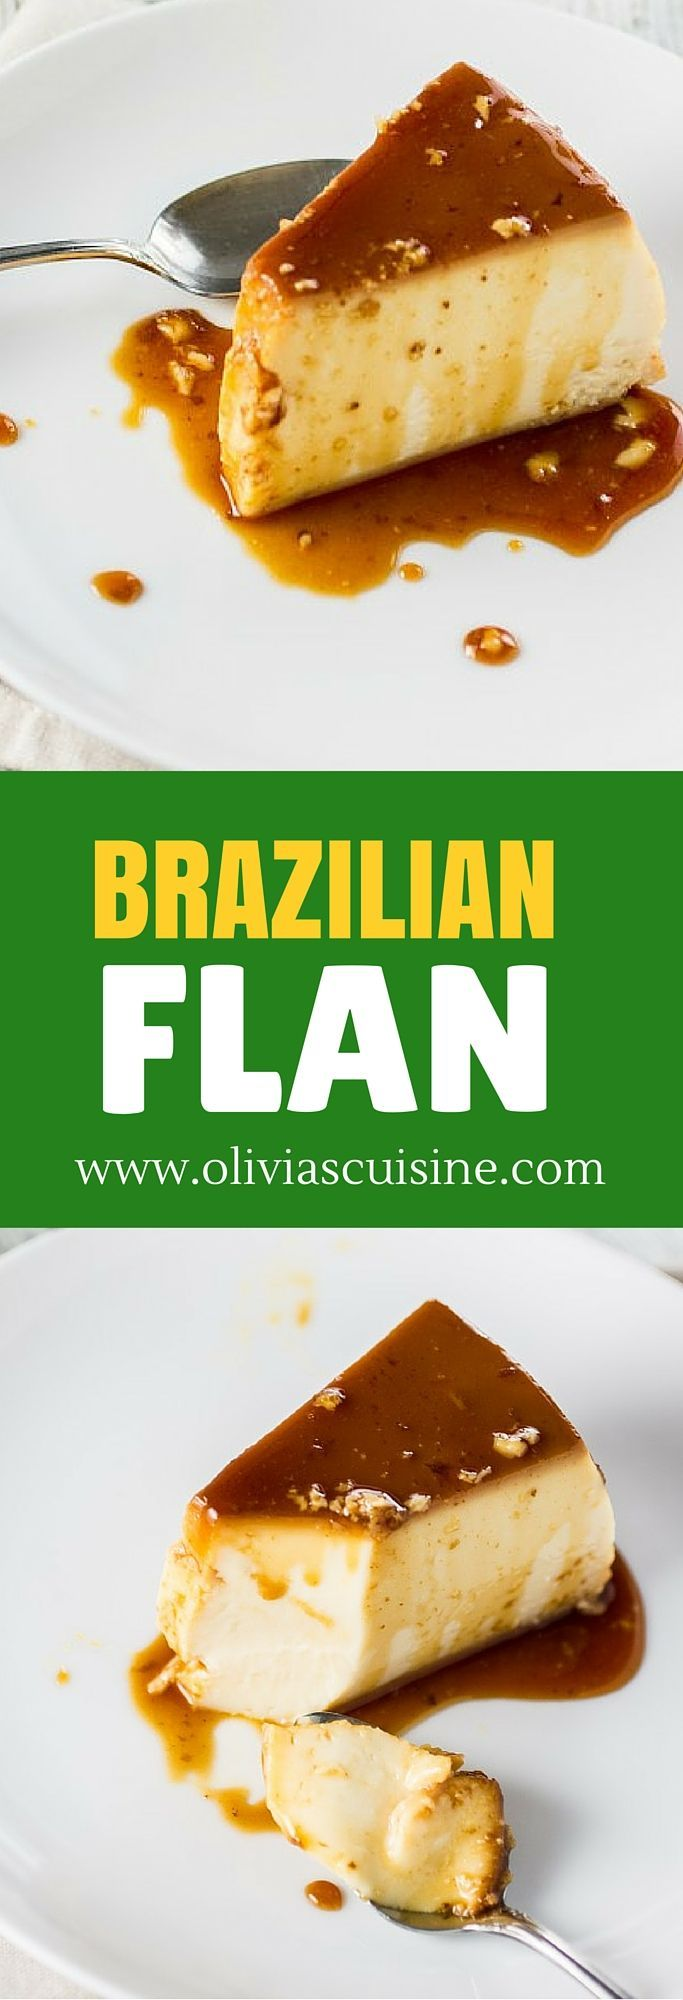 Brazilian Flan | http://www.oliviascuisine.com | If you've ever tried Brazilian Flan, you know what the fuss is all about. Delicious and creamy, it makes the most perfect dessert ever!